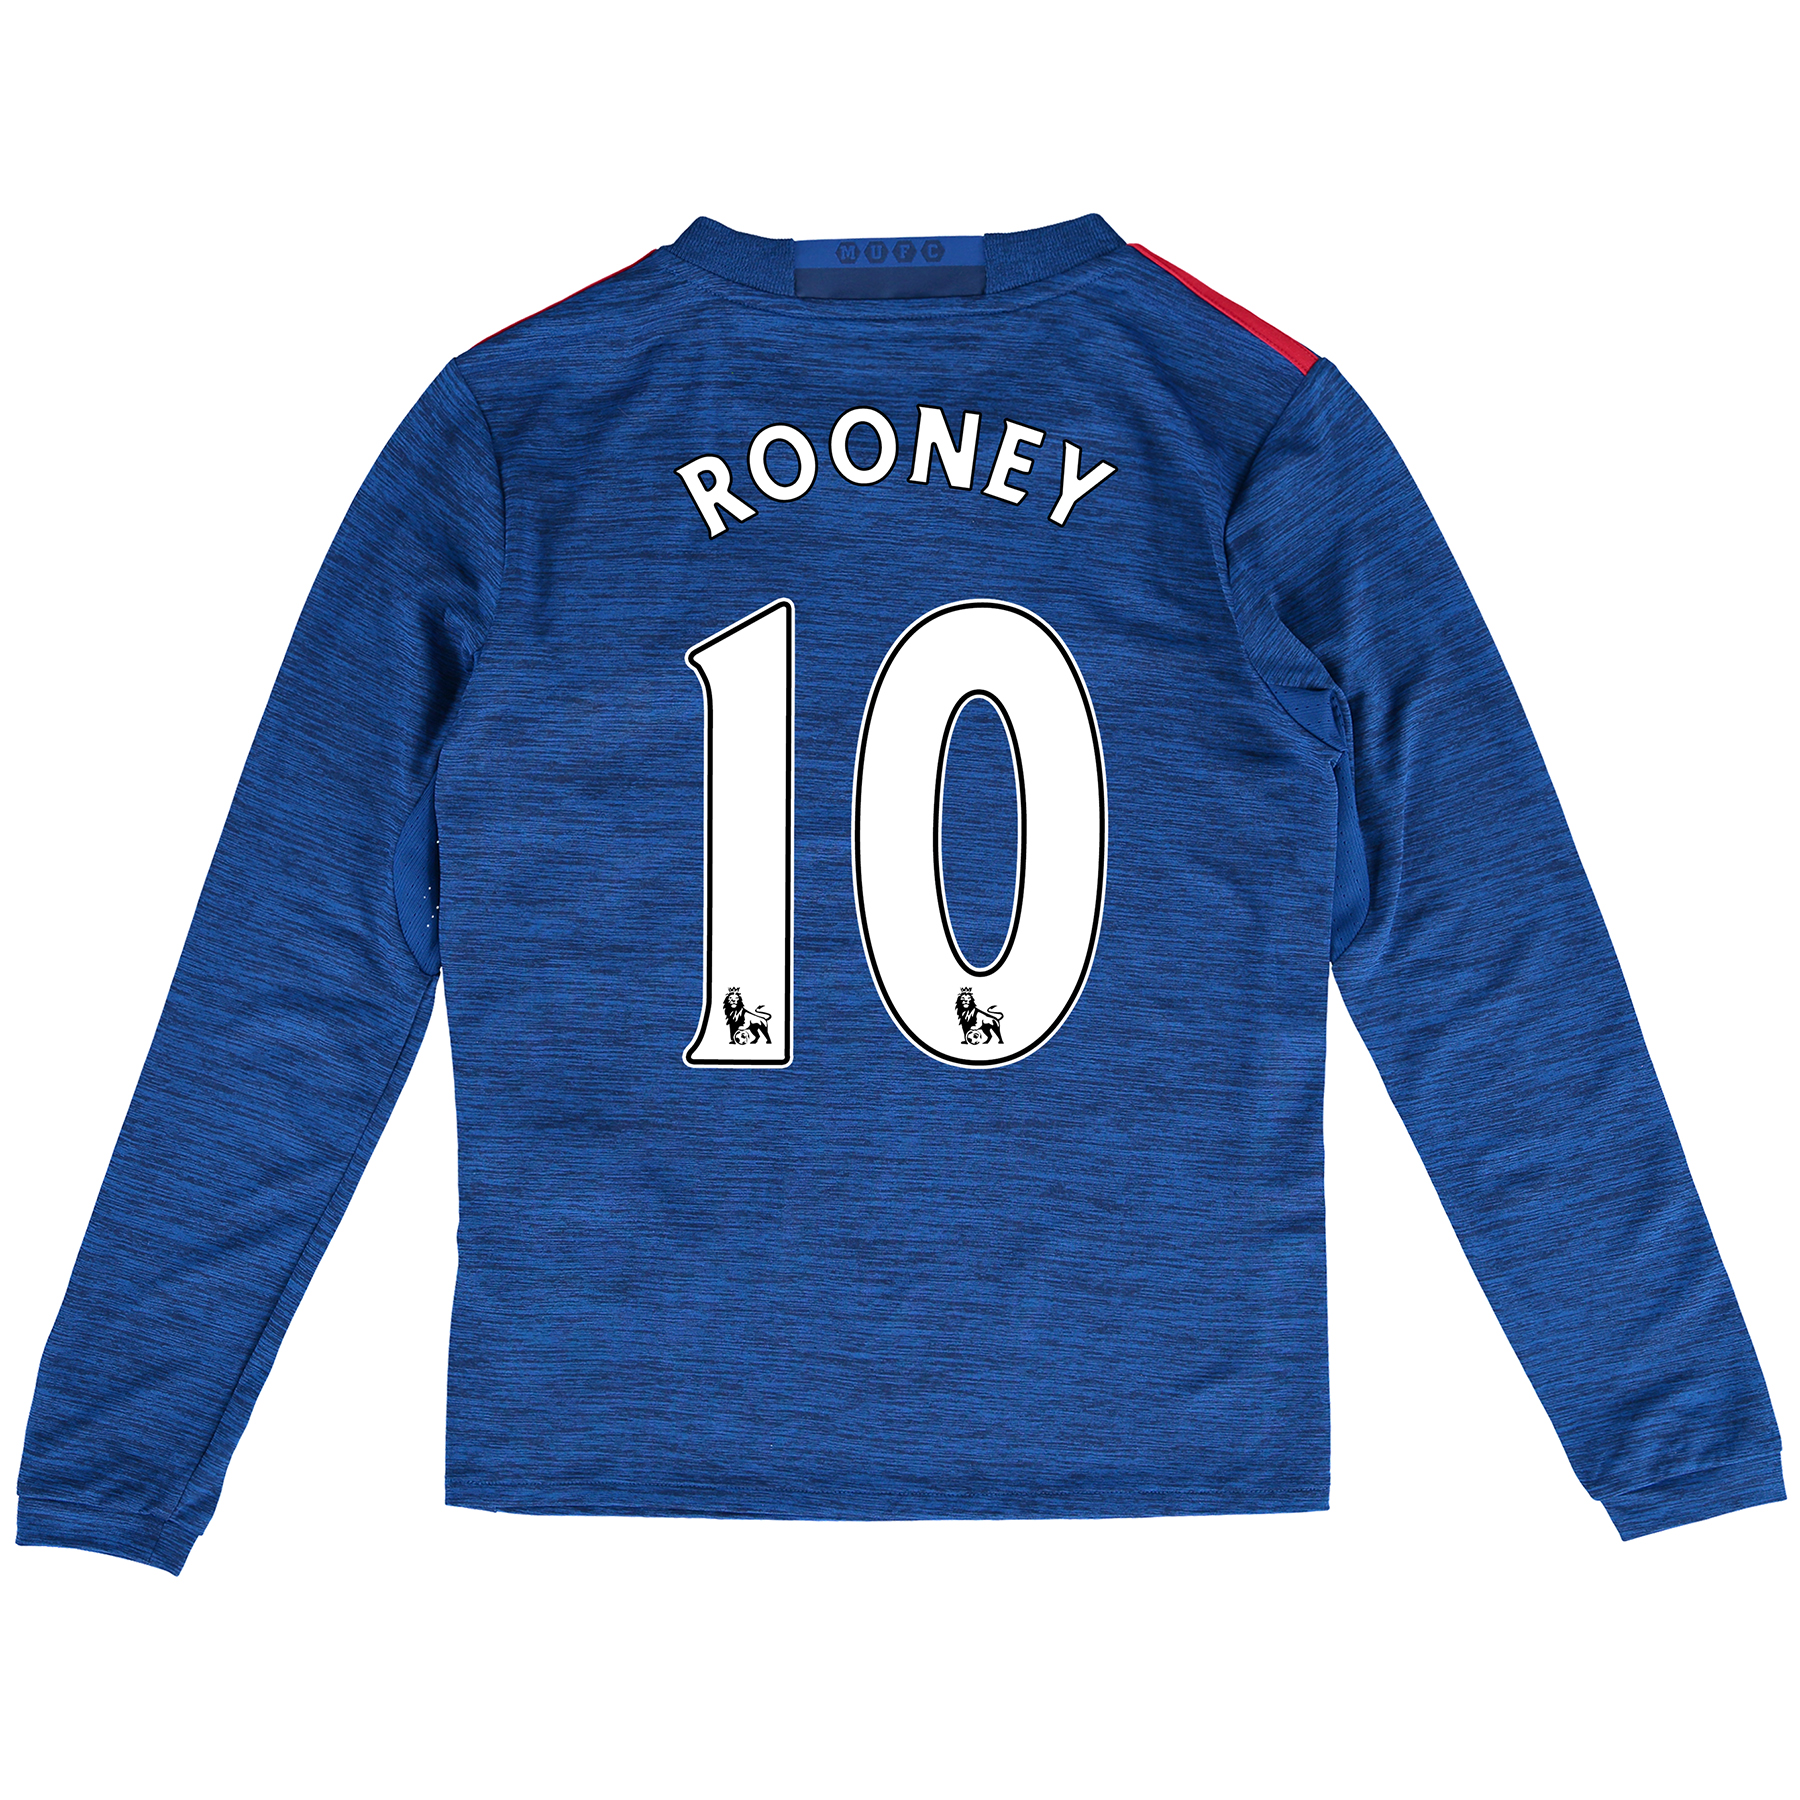 Manchester United Away Shirt 2016-17 - Kids - Long Sleeve with Rooney